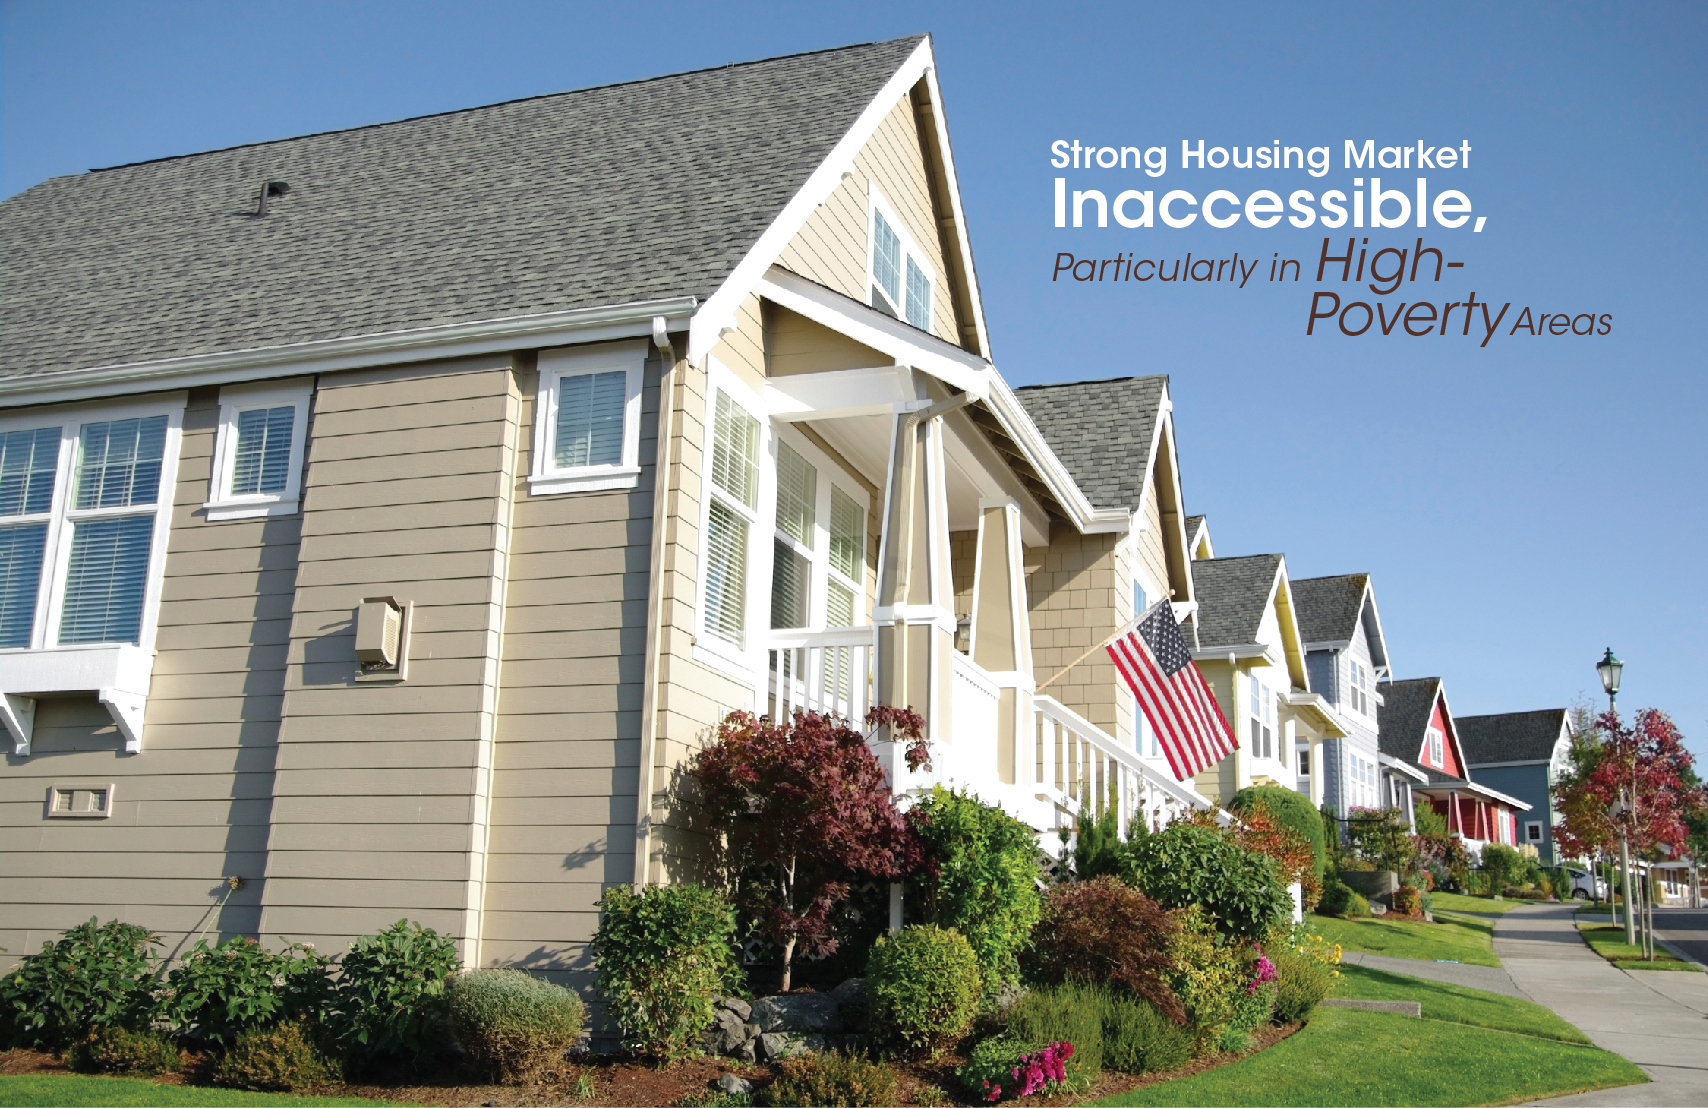 Strong Housing Market Inaccessible, Particularly in High-Poverty Areas-01